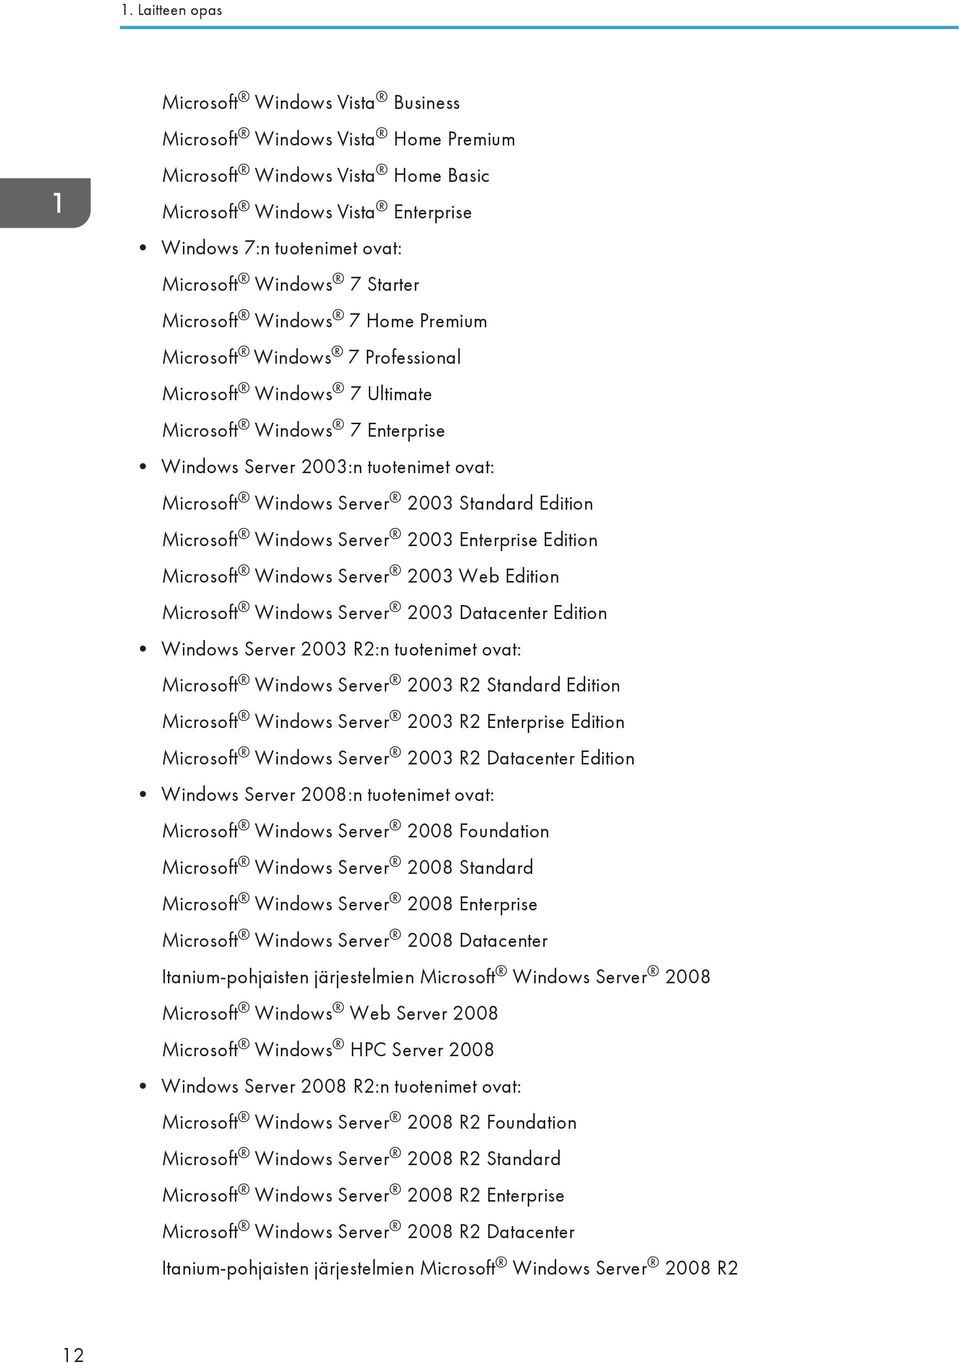 Windows Server 2003 Standard Edition Microsoft Windows Server 2003 Enterprise Edition Microsoft Windows Server 2003 Web Edition Microsoft Windows Server 2003 Datacenter Edition Windows Server 2003